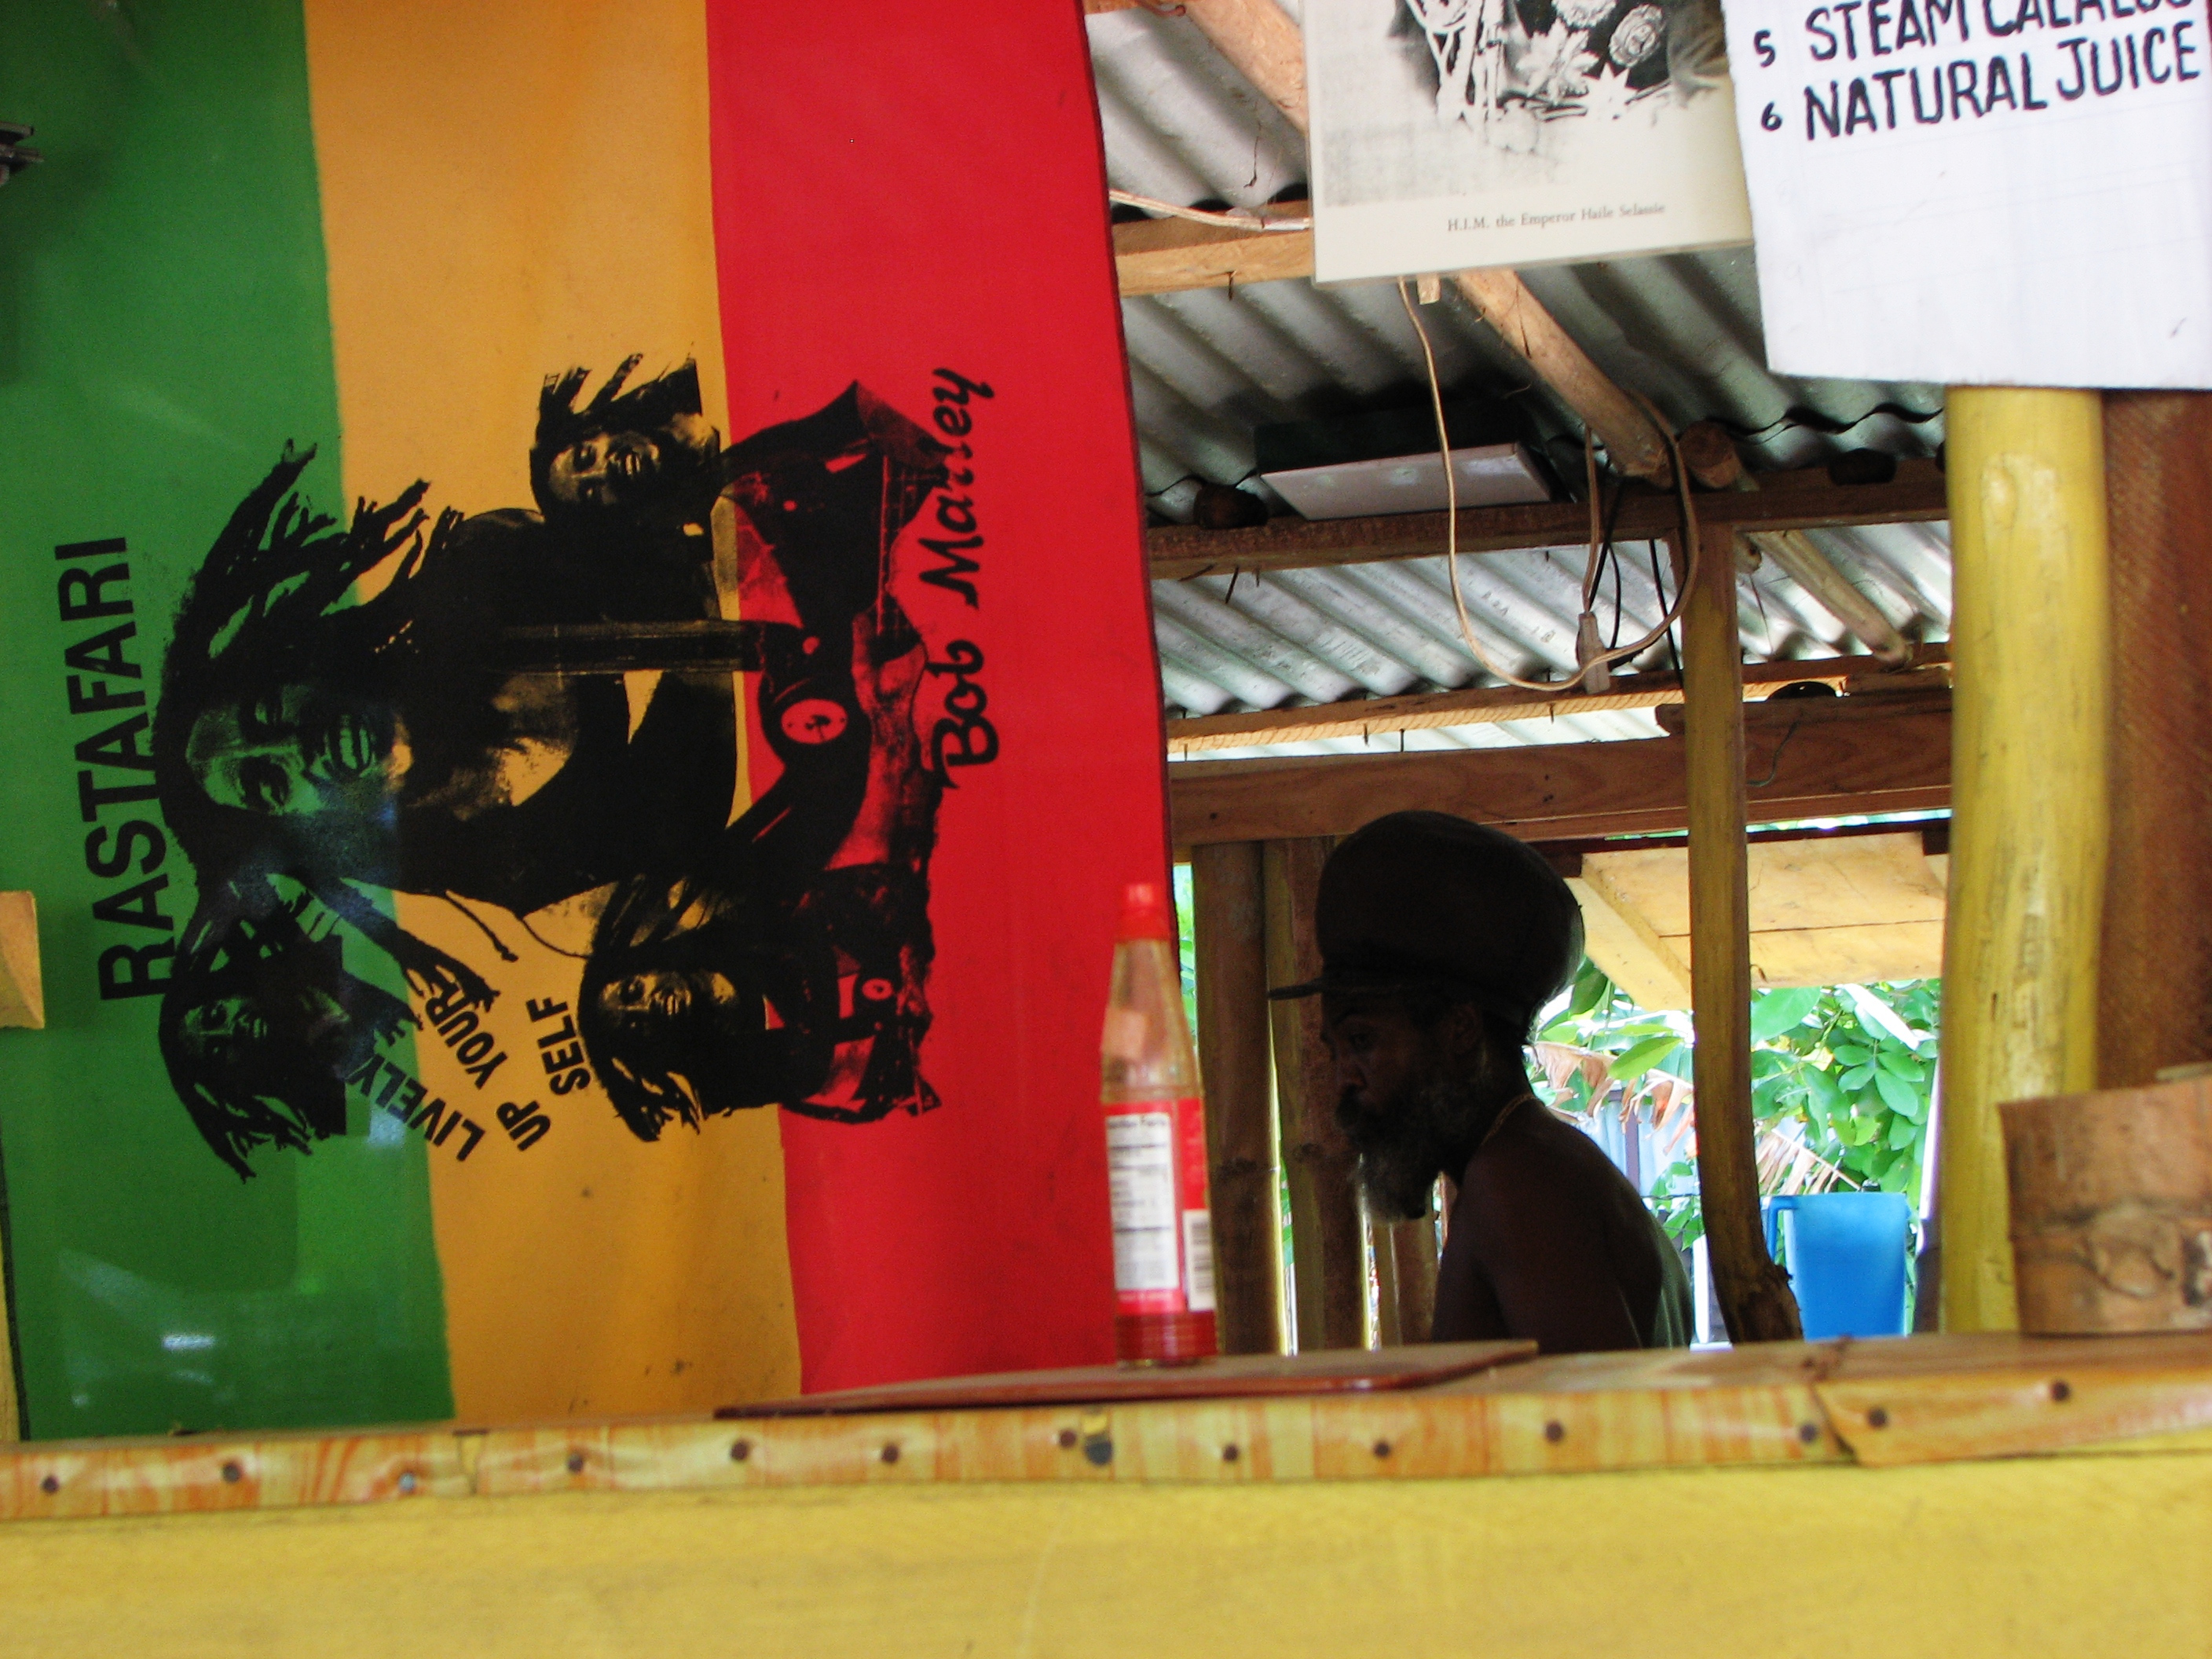 Rastafari Flag with a man standing in the background at a restaurant